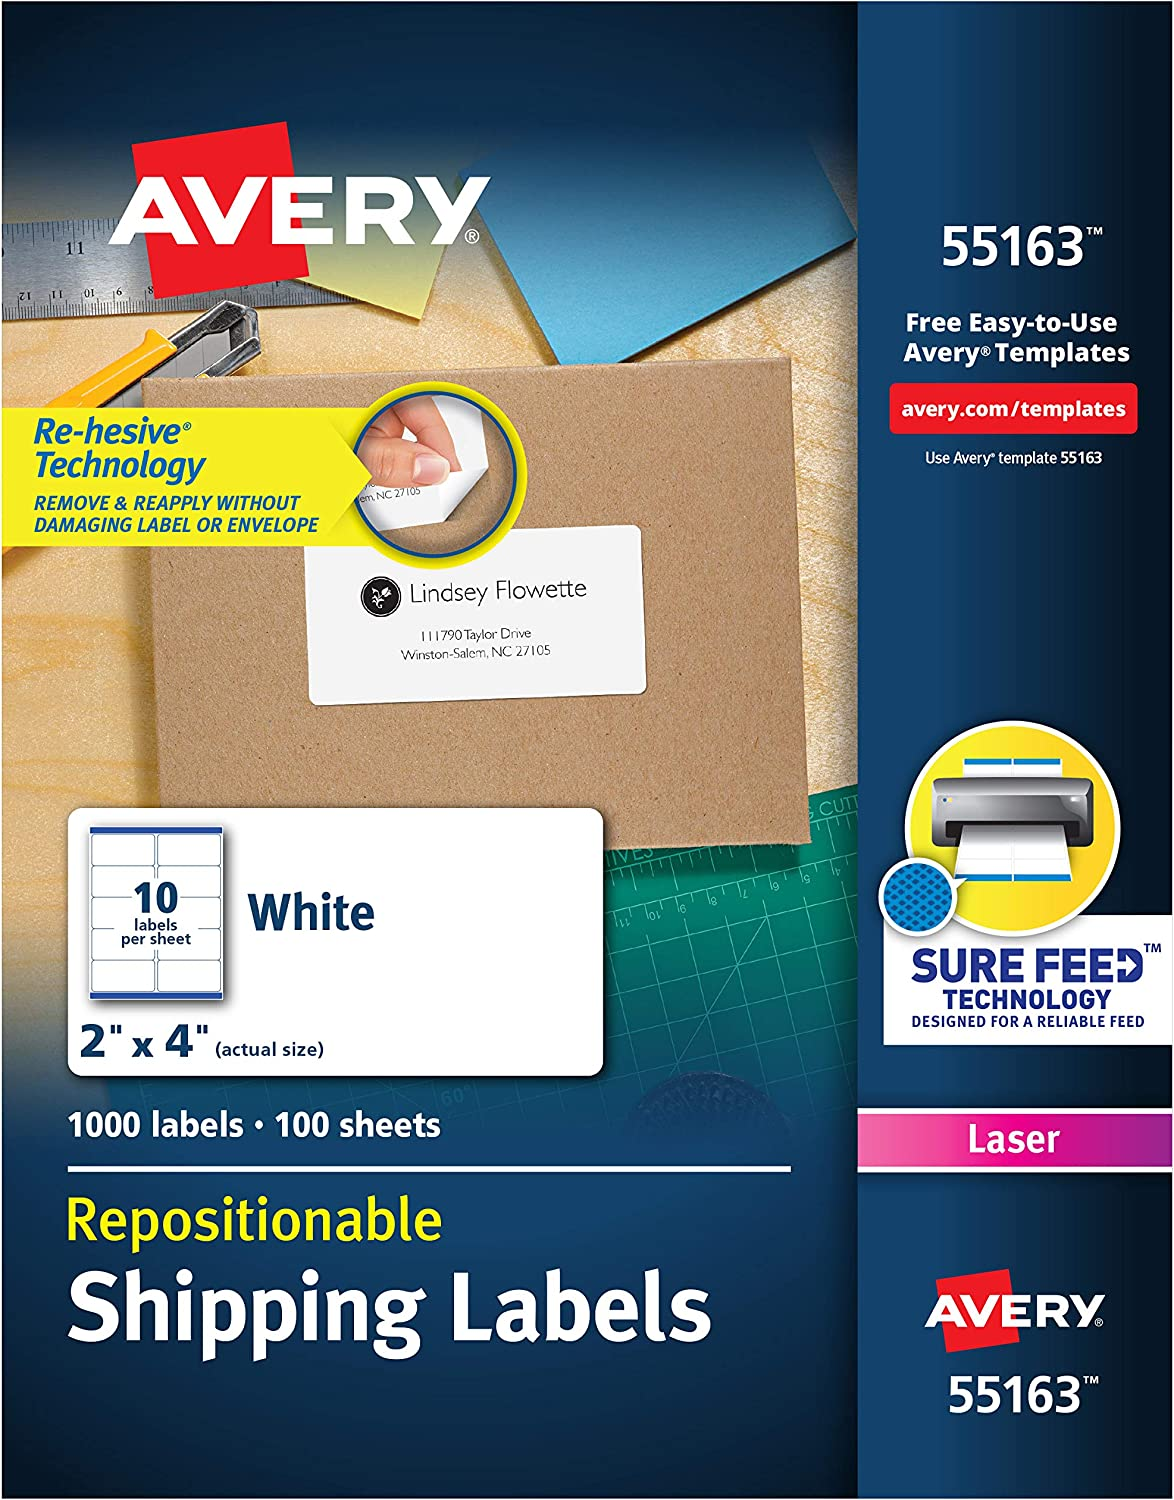 Avery Repositionable Shipping Labels for Laser Printers 2 x 4, Box of 1,000 (55163)